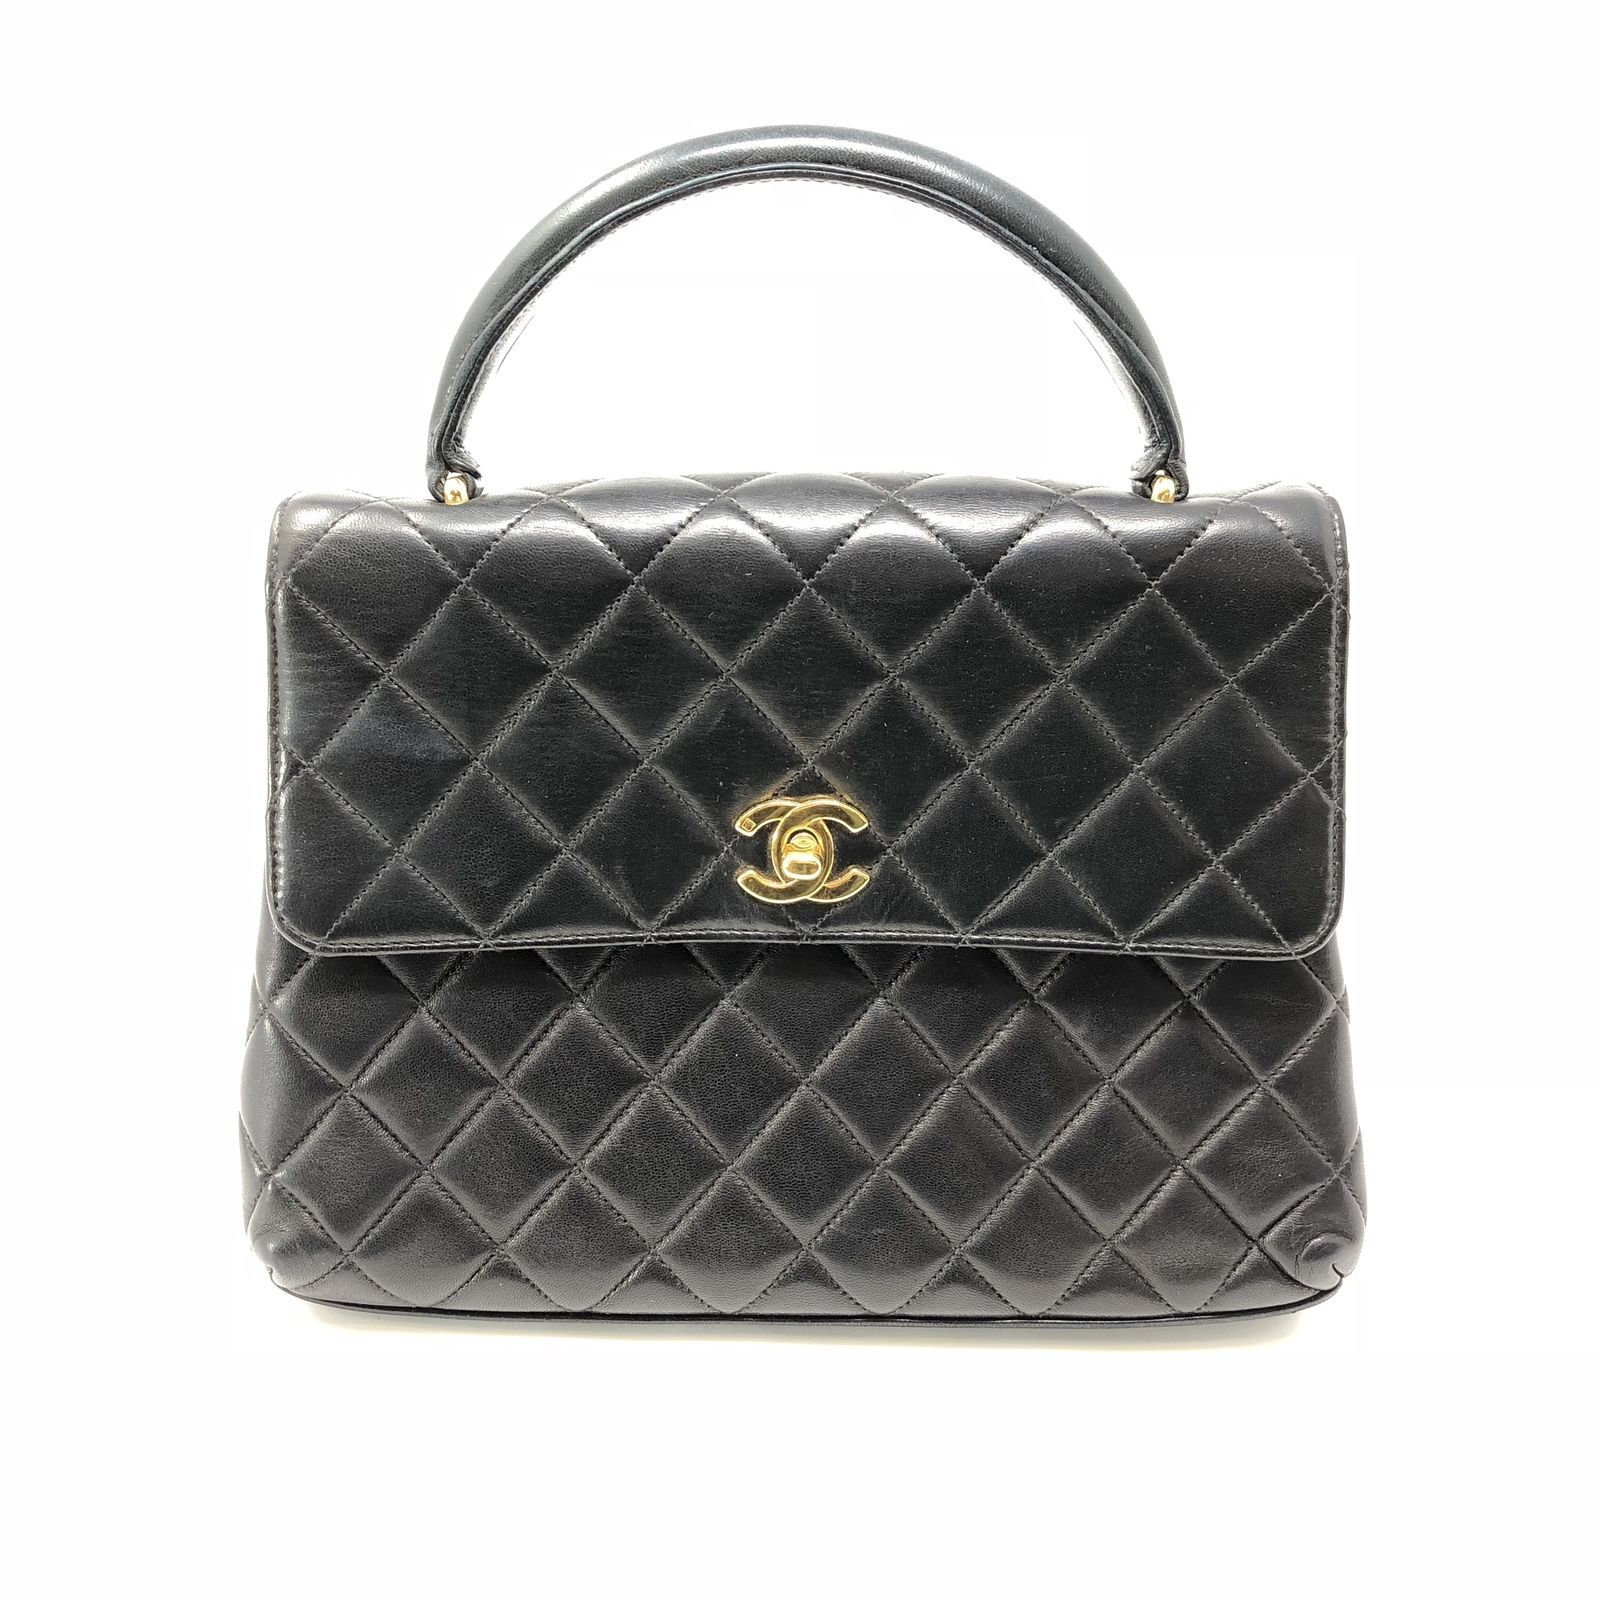 0d676e5f68 Details about Vintage CHANEL Black Gold Quilted Lambskin Medium ...